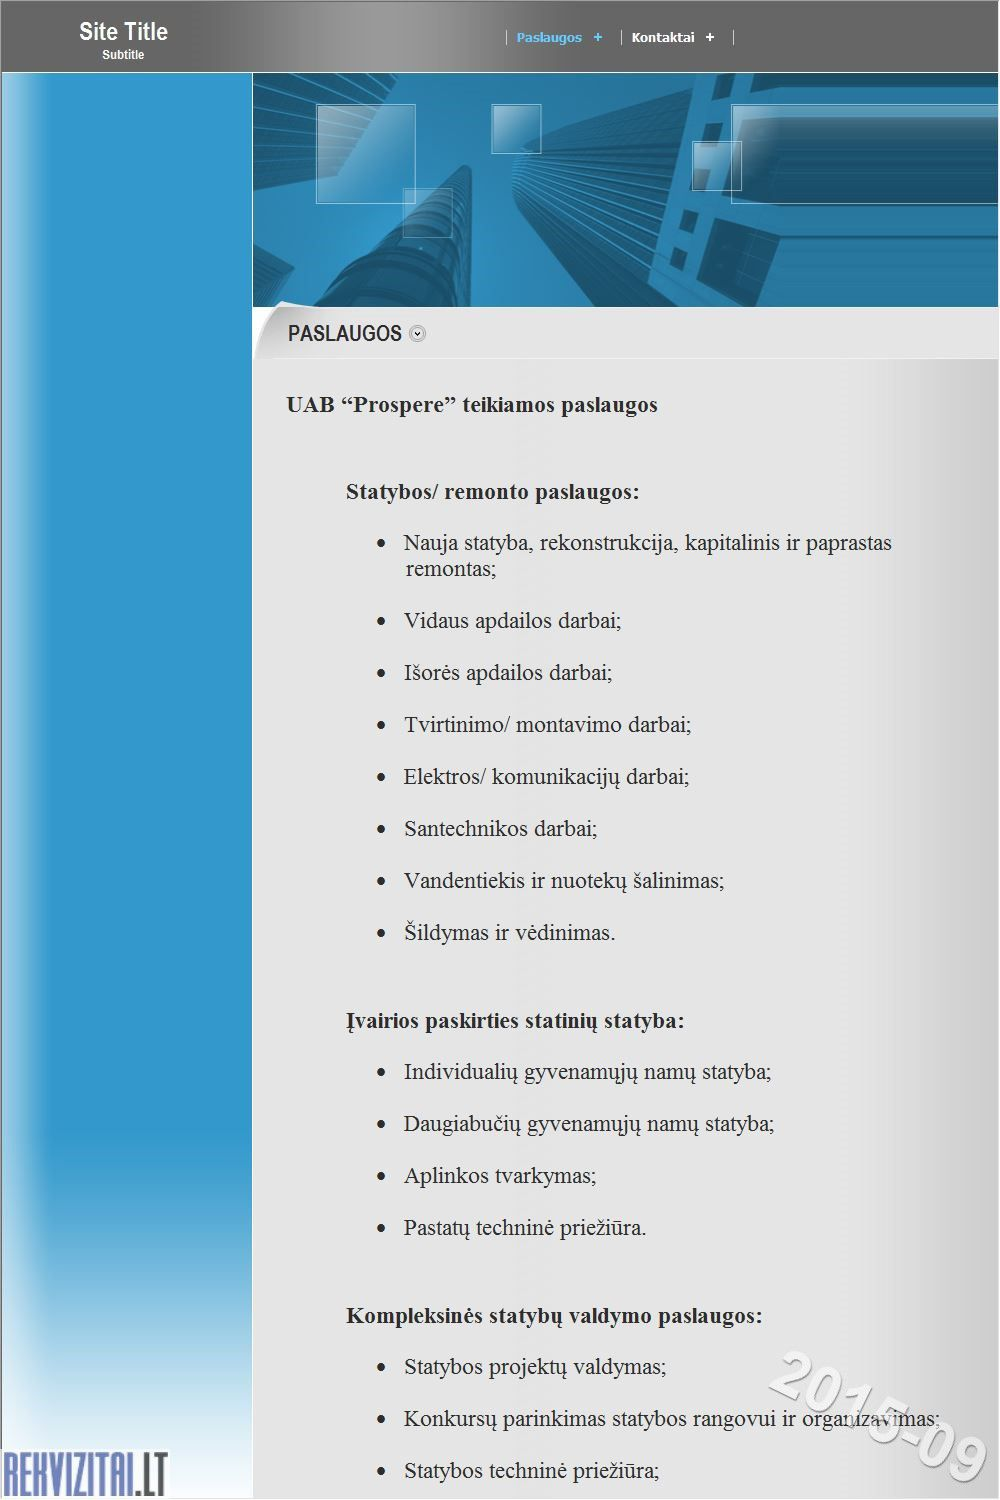 Cement Uab Lt Contact Mail: UAB PROSPERE. Contacts, Map. Rekvizitai.lt